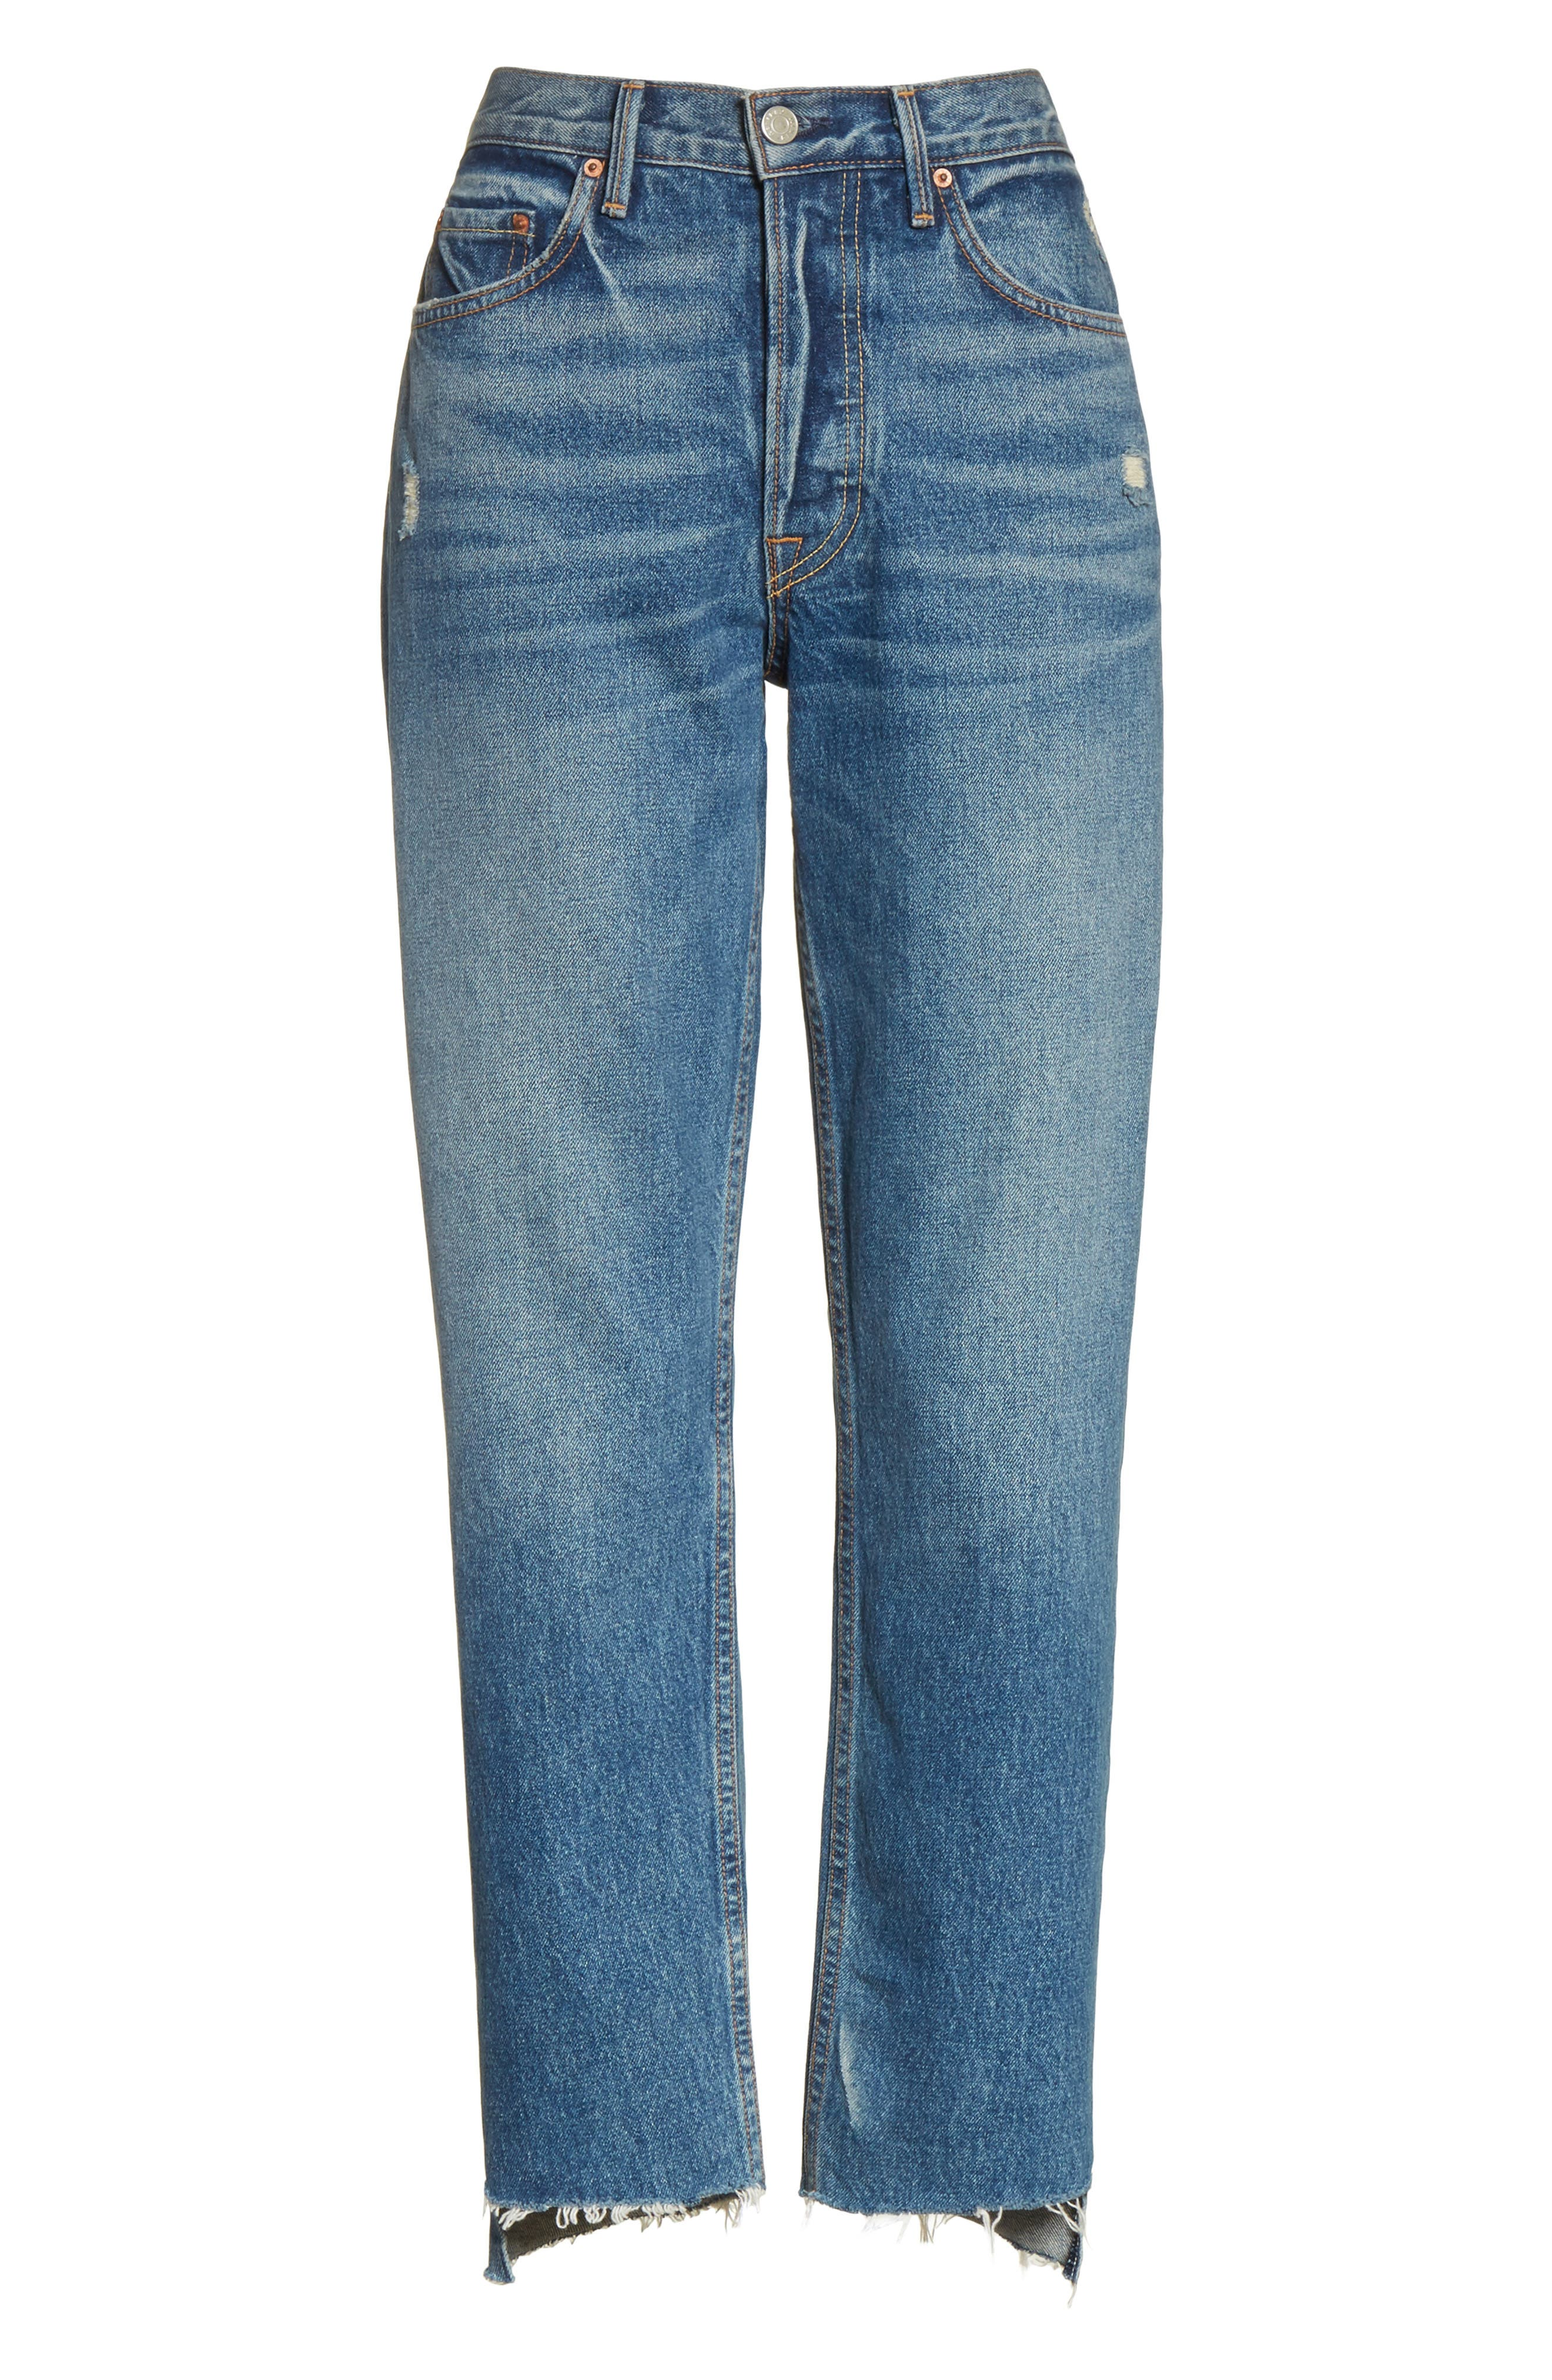 Helena Rigid High Waist Straight Jeans,                             Alternate thumbnail 7, color,                             CLOSE TO YOU